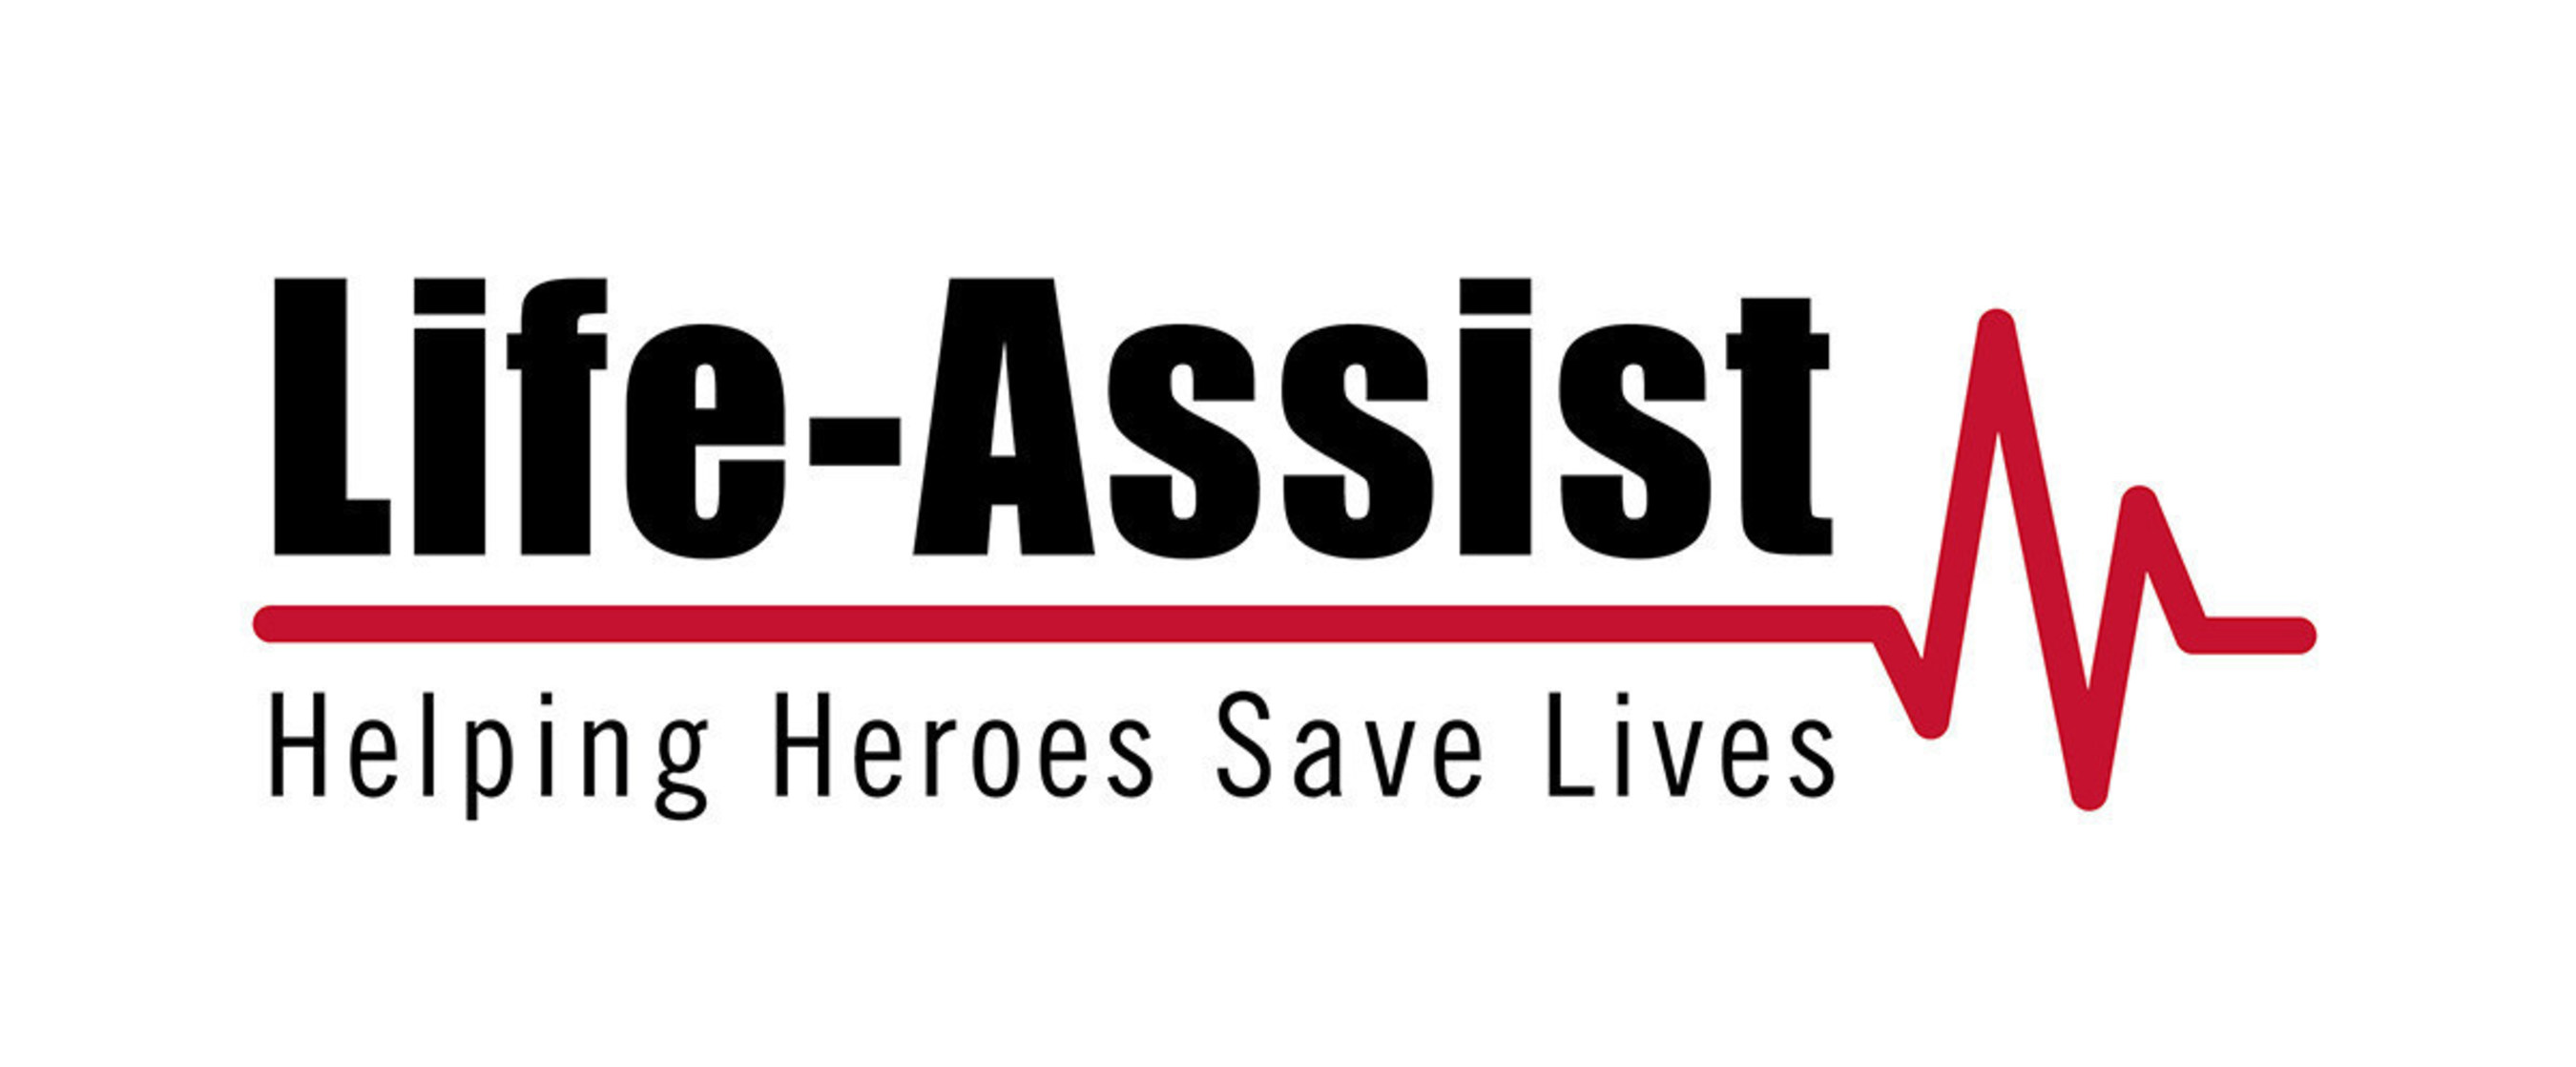 At Life-Assist, we help heroes save lives. As one of the nation's largest distributors of EMS supplies and equipment, we offer superior value through best-value pricing, customized programs, personalized support and the best customer experience in the industry. Call us at (800) 824-6016 or visit us online at Life-Assist.com.